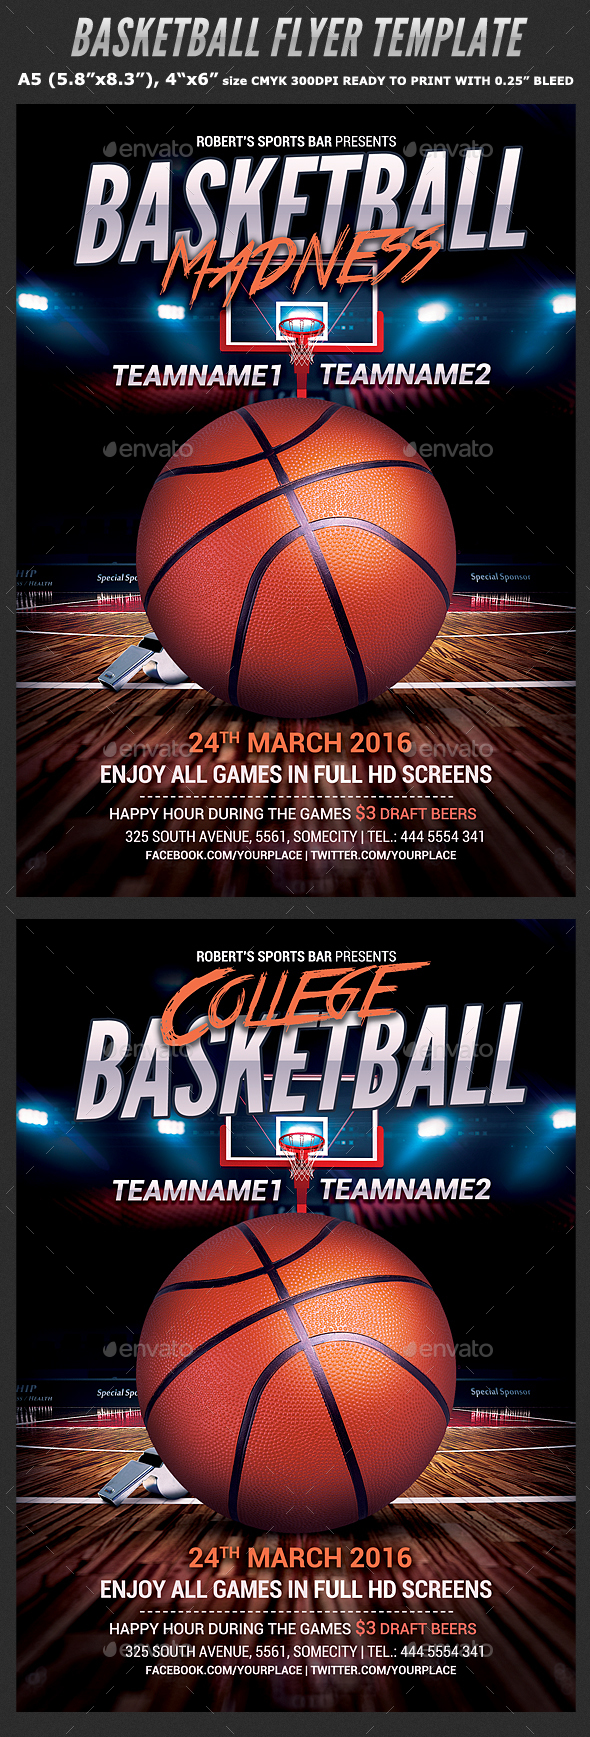 Basketball Flyer Template by Hotpin | GraphicRiver